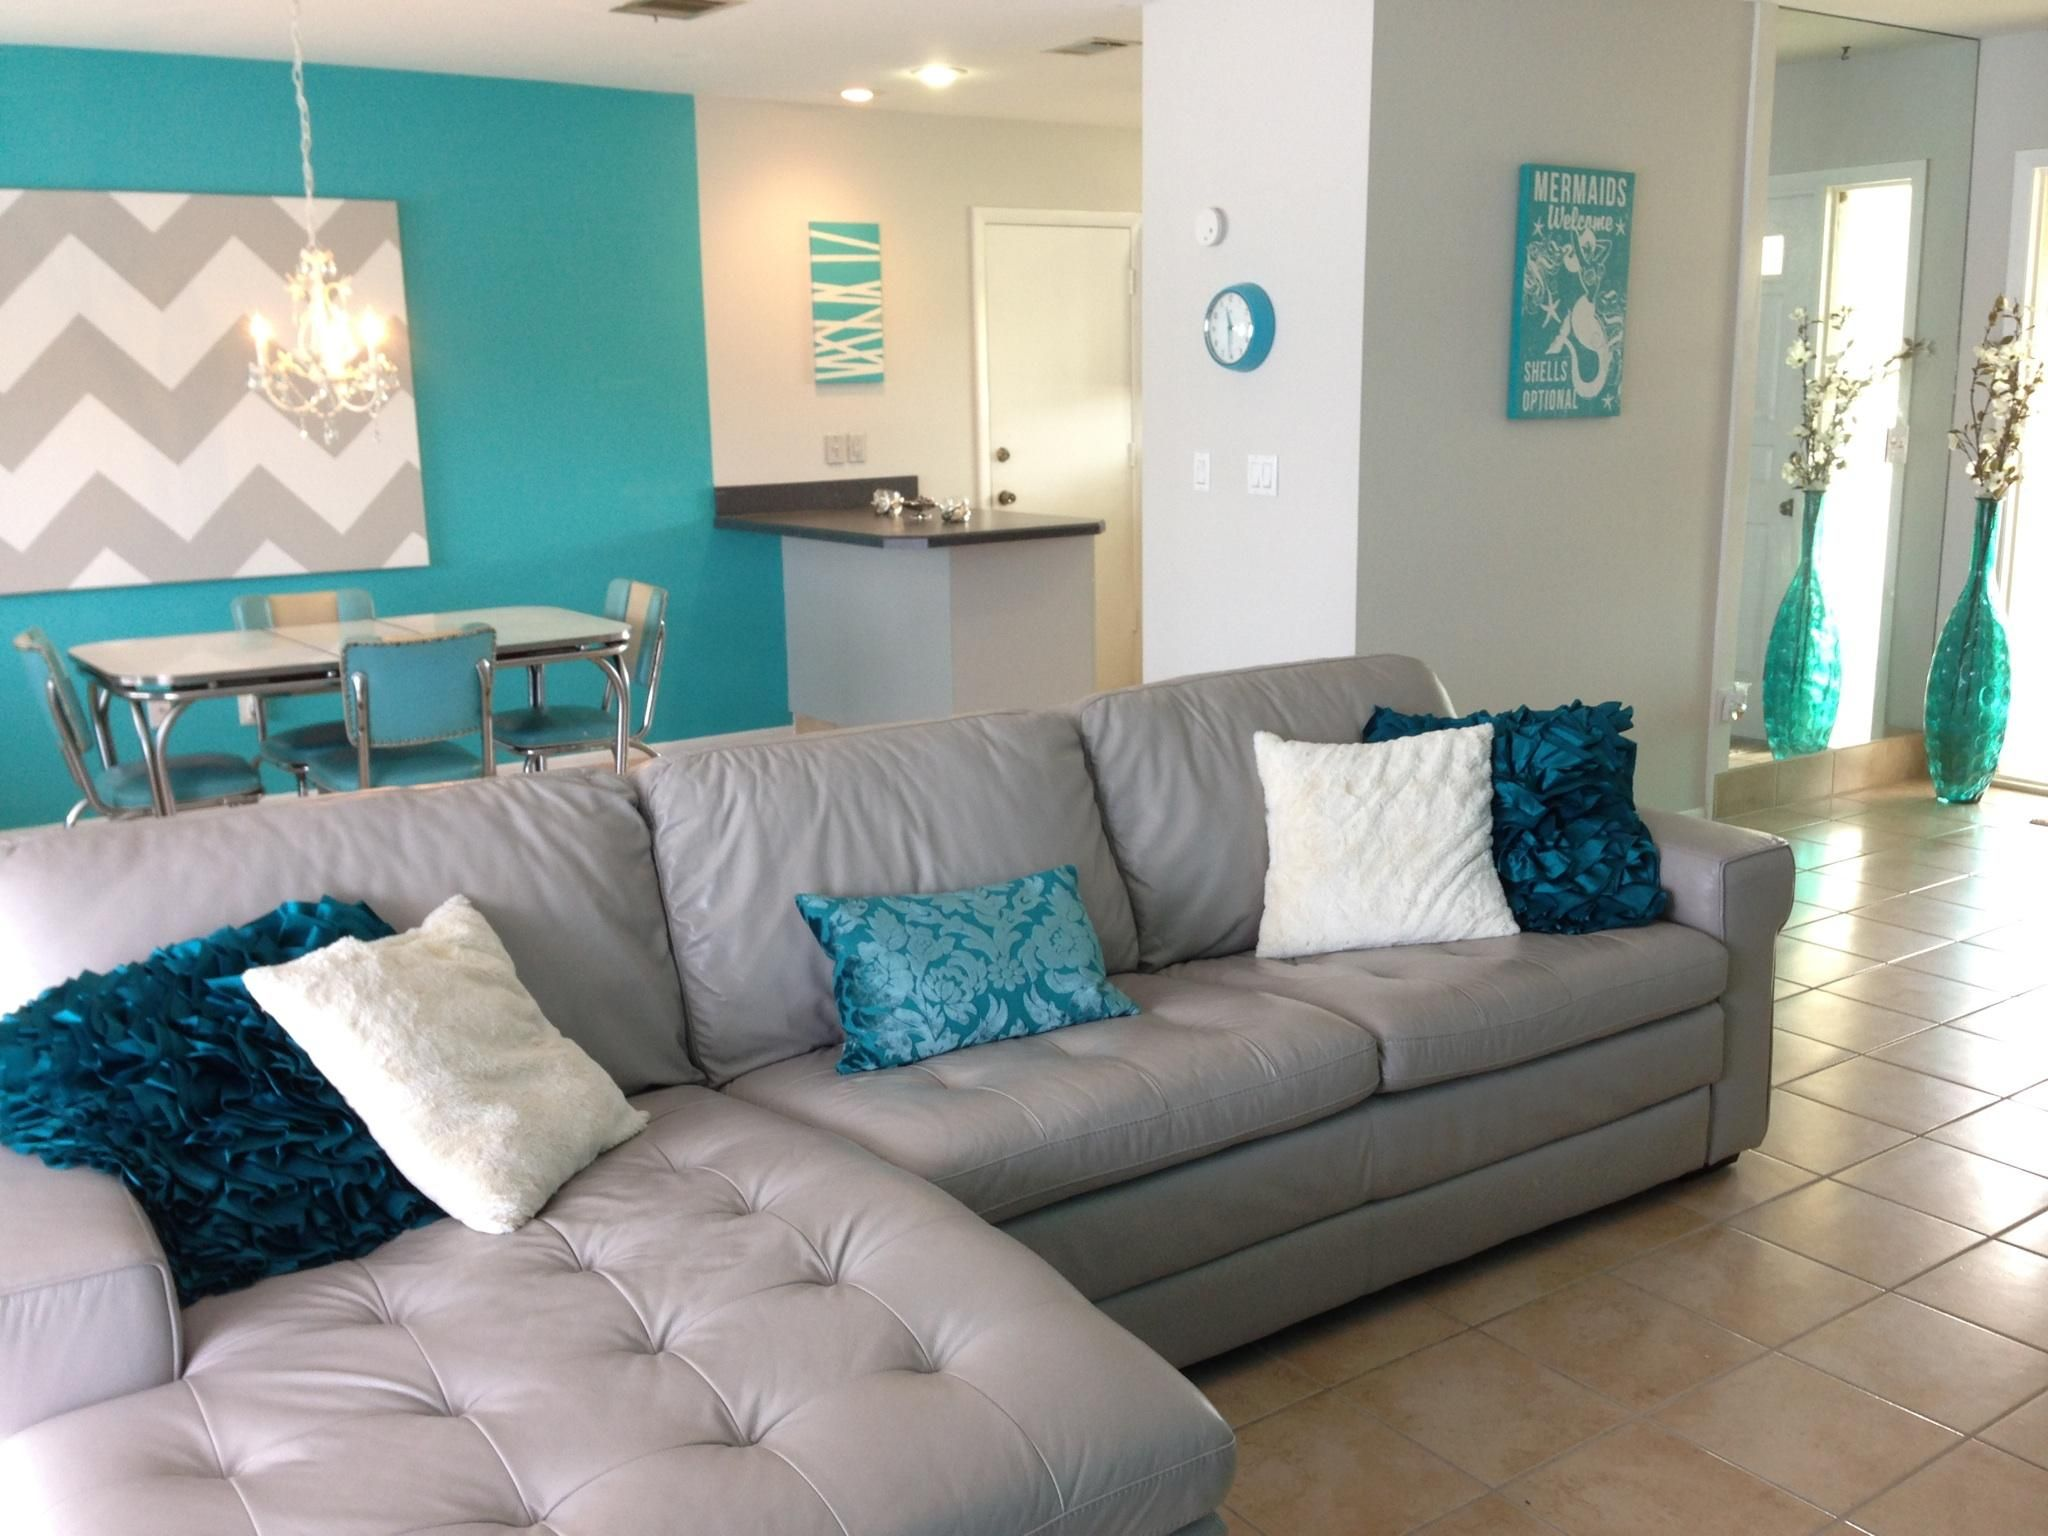 Florida home  Beach house  Leather couch  Homemade art  Tan and teal living. Best 25  Teal living room furniture ideas on Pinterest   Teal grey